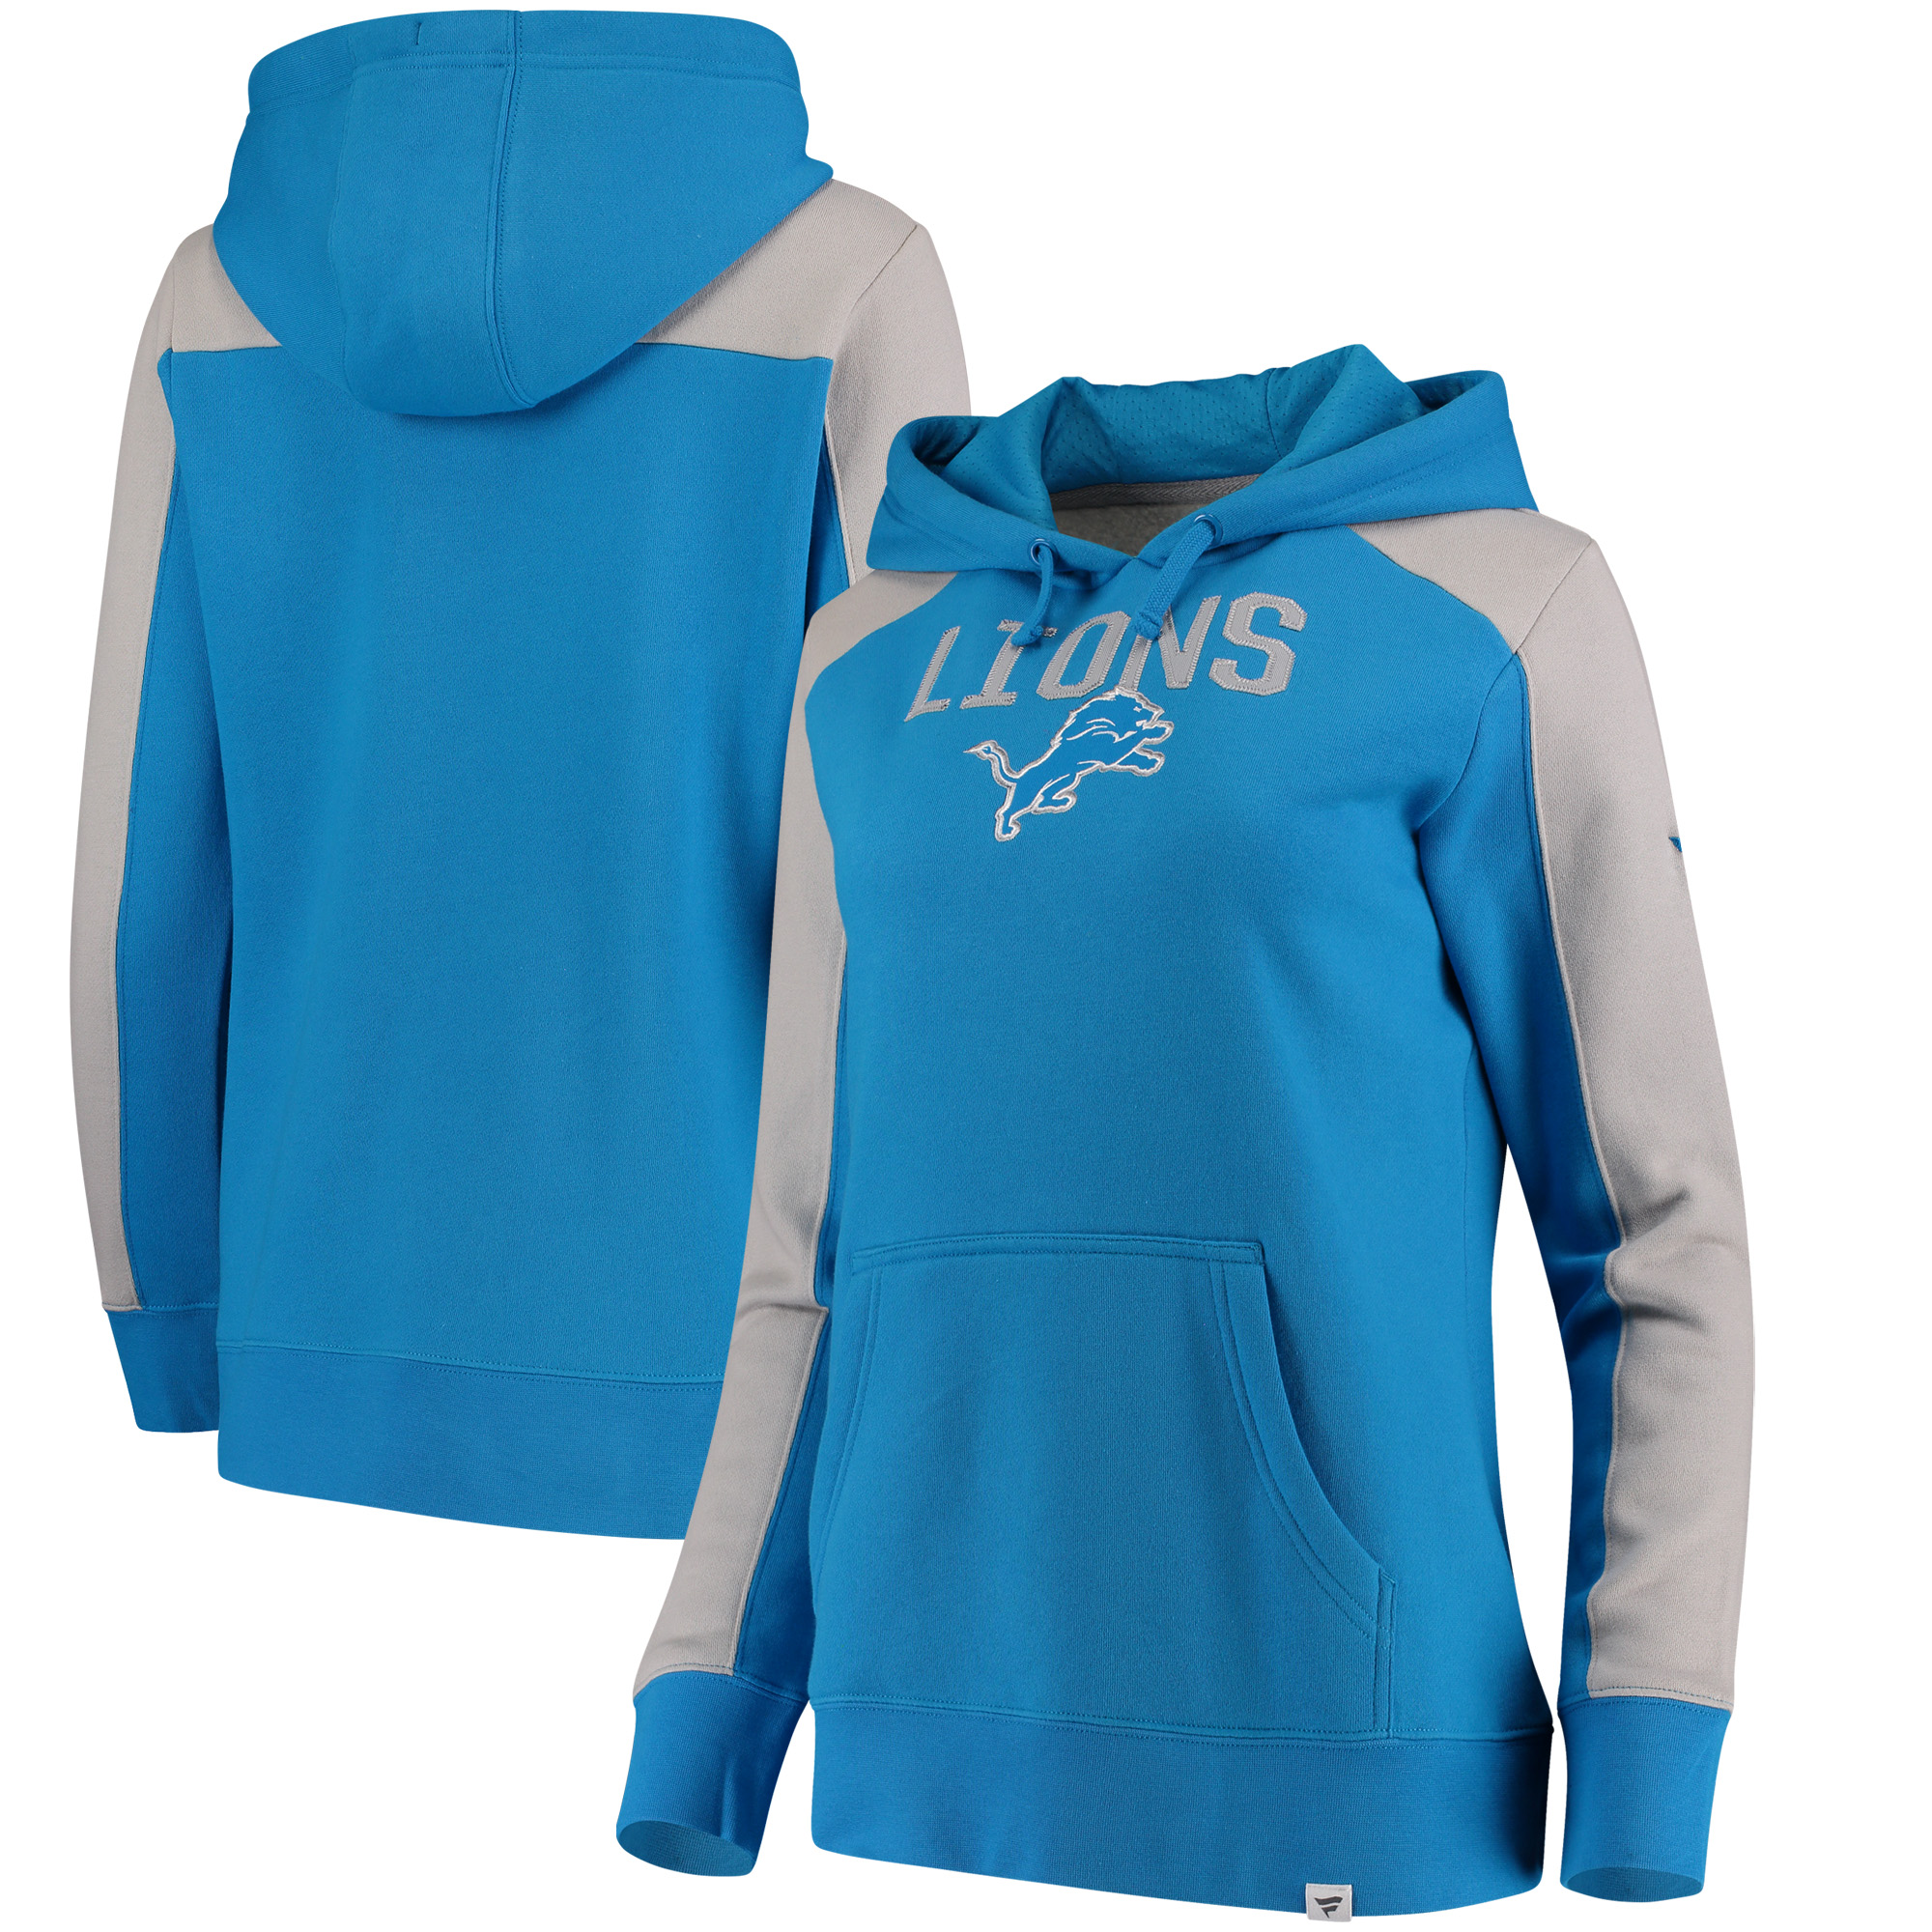 c4eb91004 Detroit Lions NFL Pro Line by Fanatics Branded Women s Wordmark Iconic  Fleece Pullover Hoodie - Blue Heathered Gray - Walmart.com